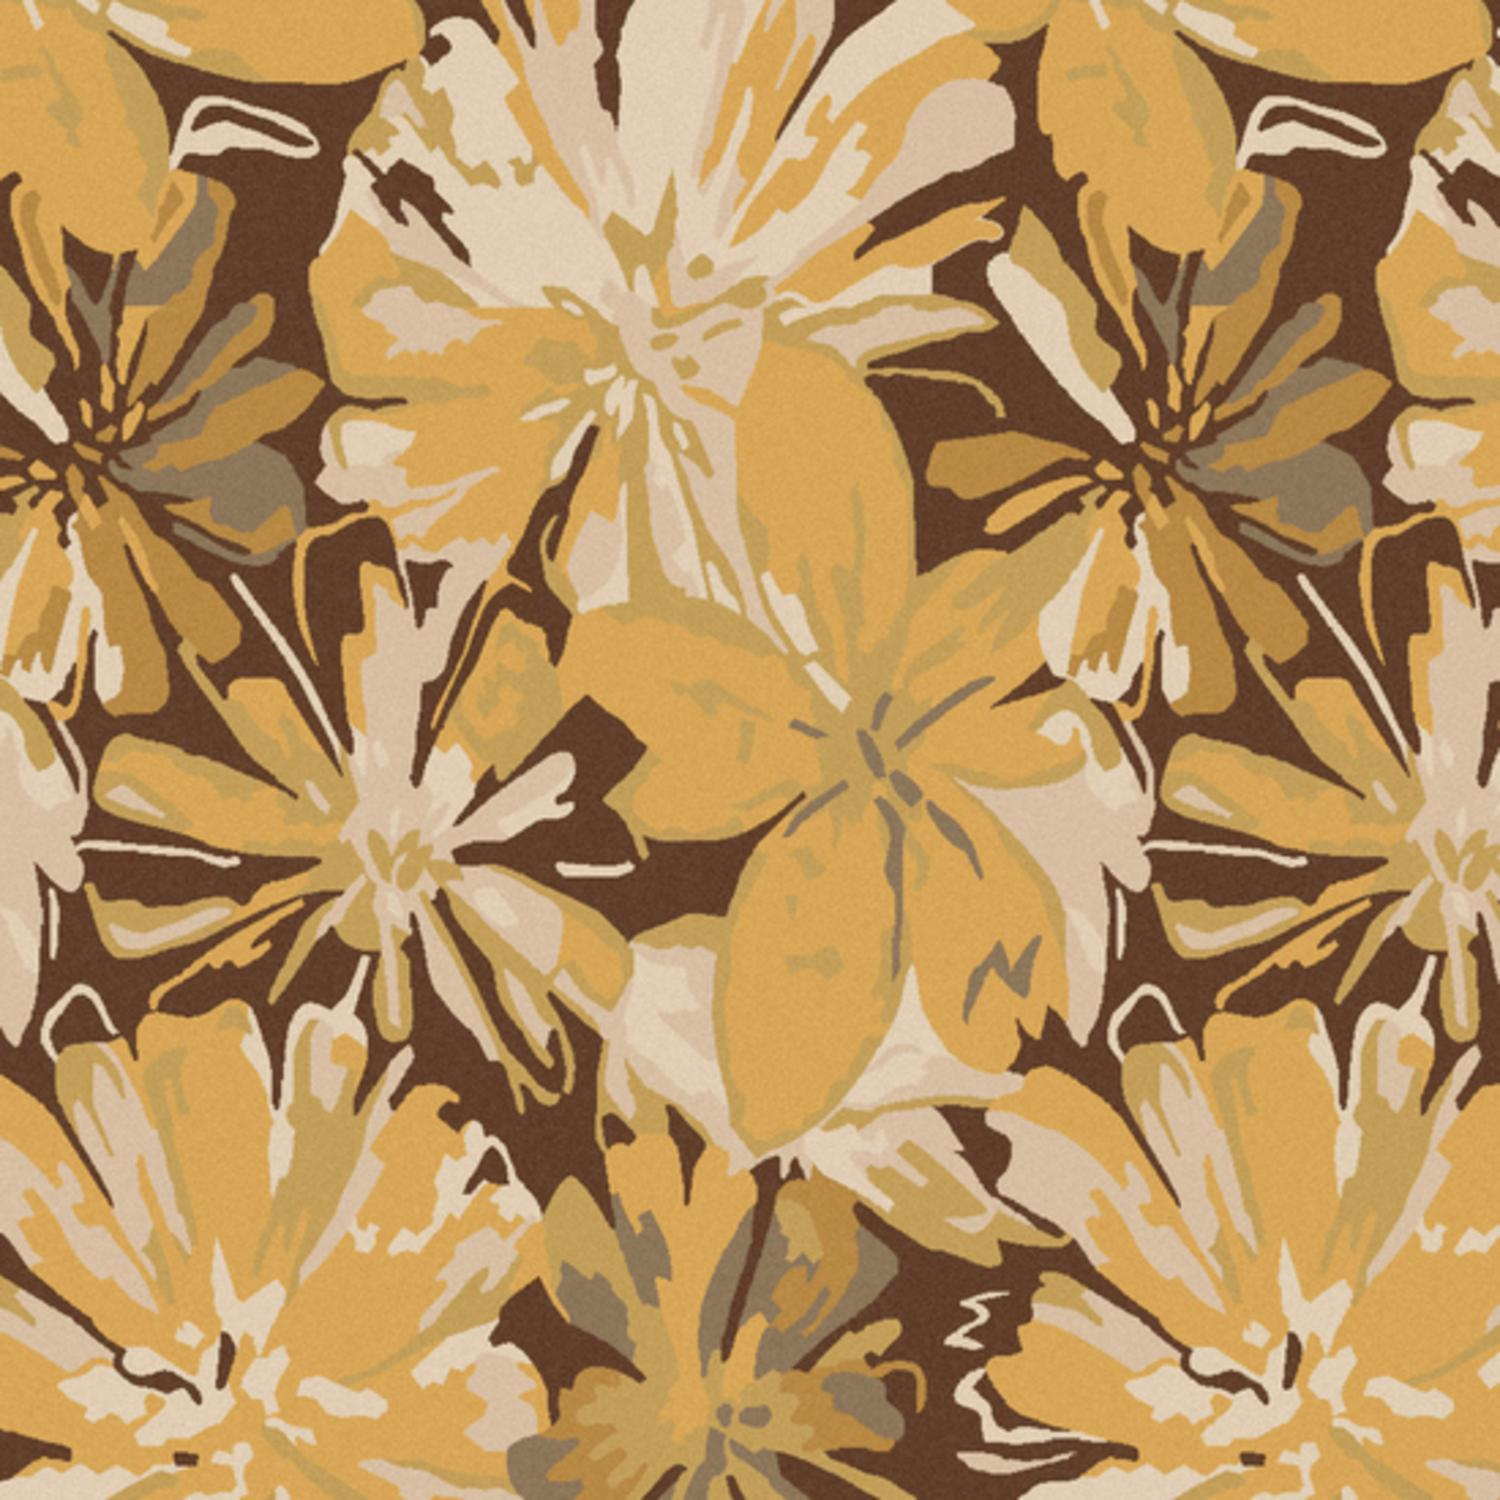 9' x 9' Daisy Dream Gold and Gray Hand Tufted Square Wool Area Throw Rug